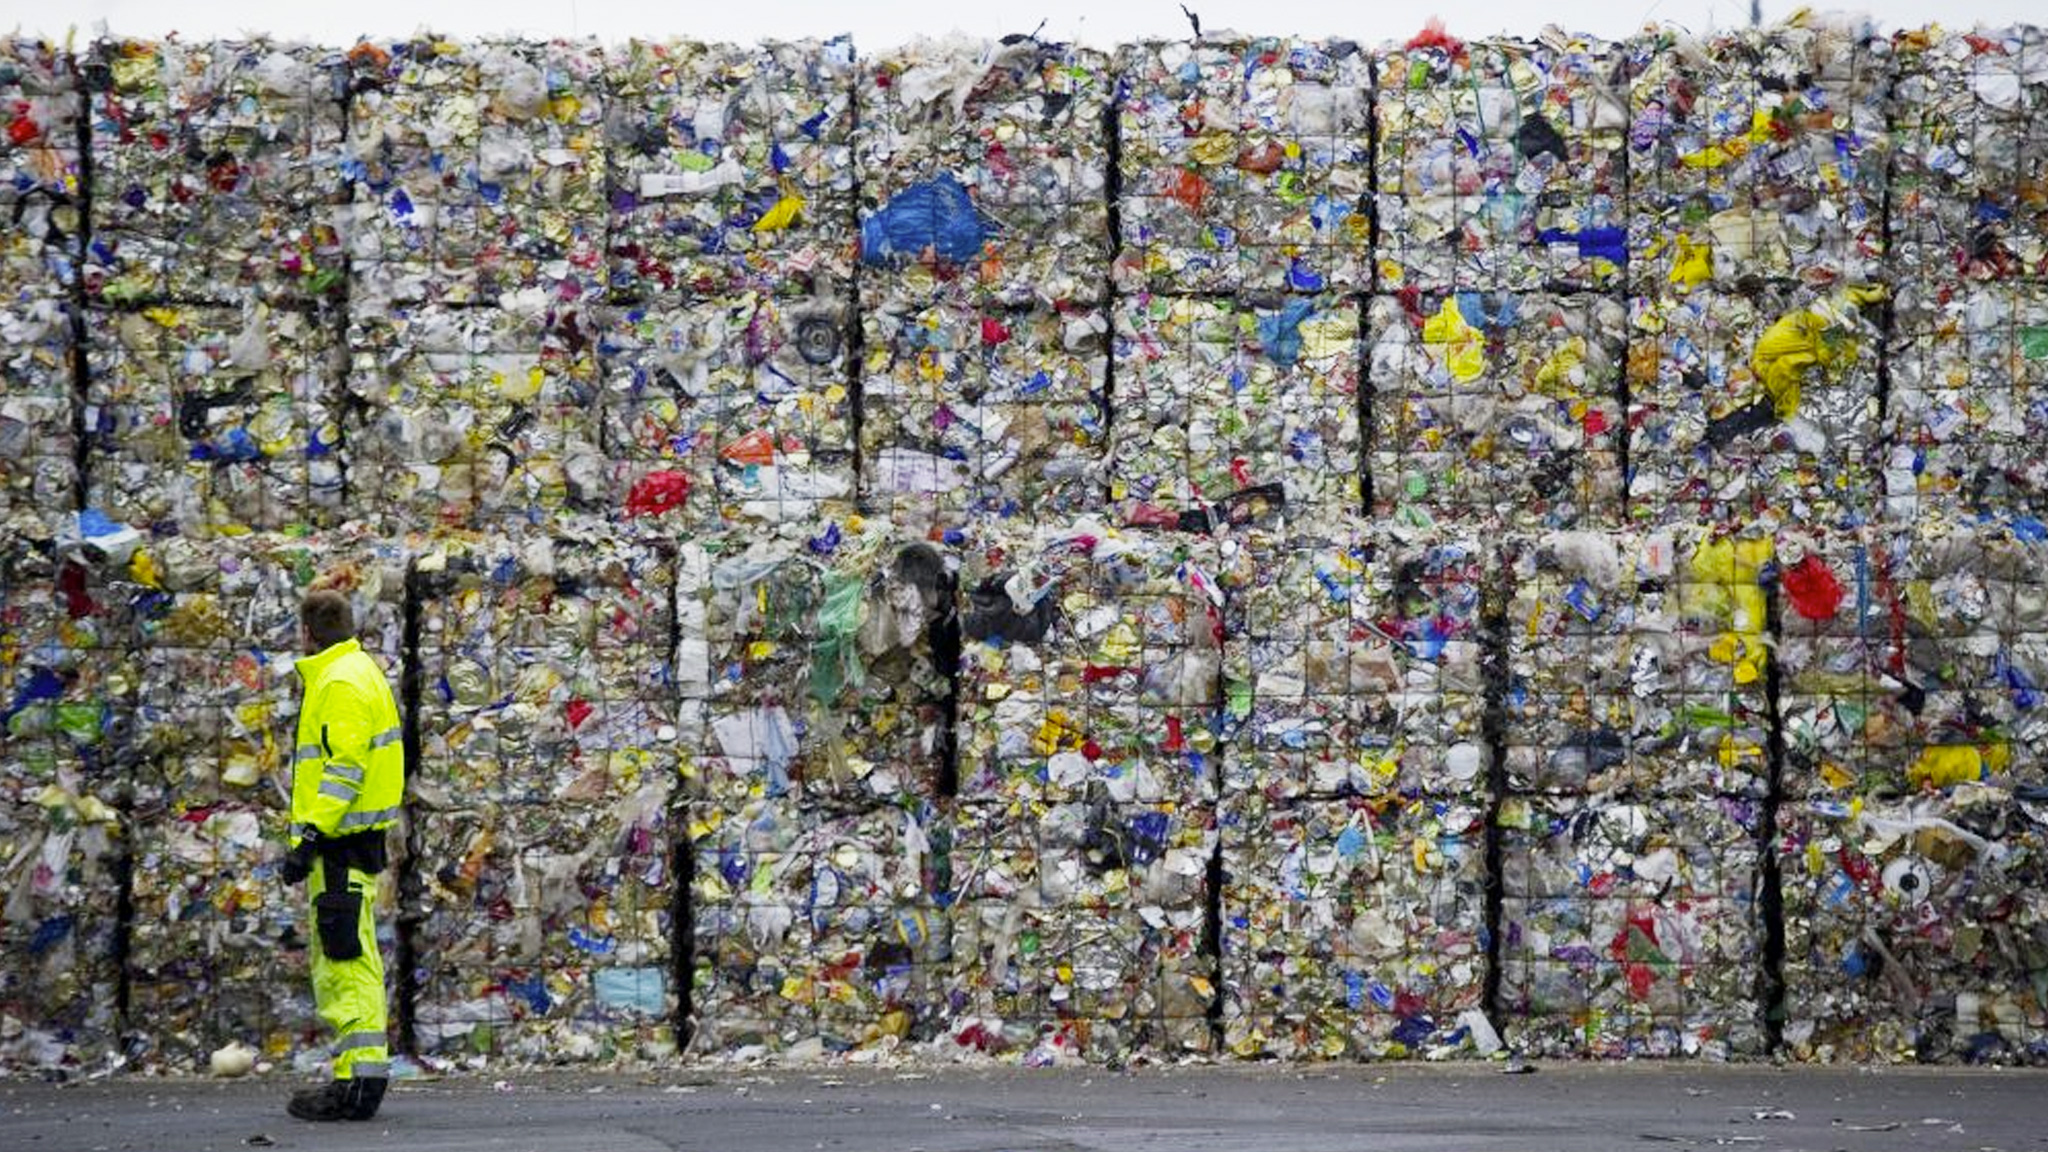 New technology brings revolution in recycling scrapped cars